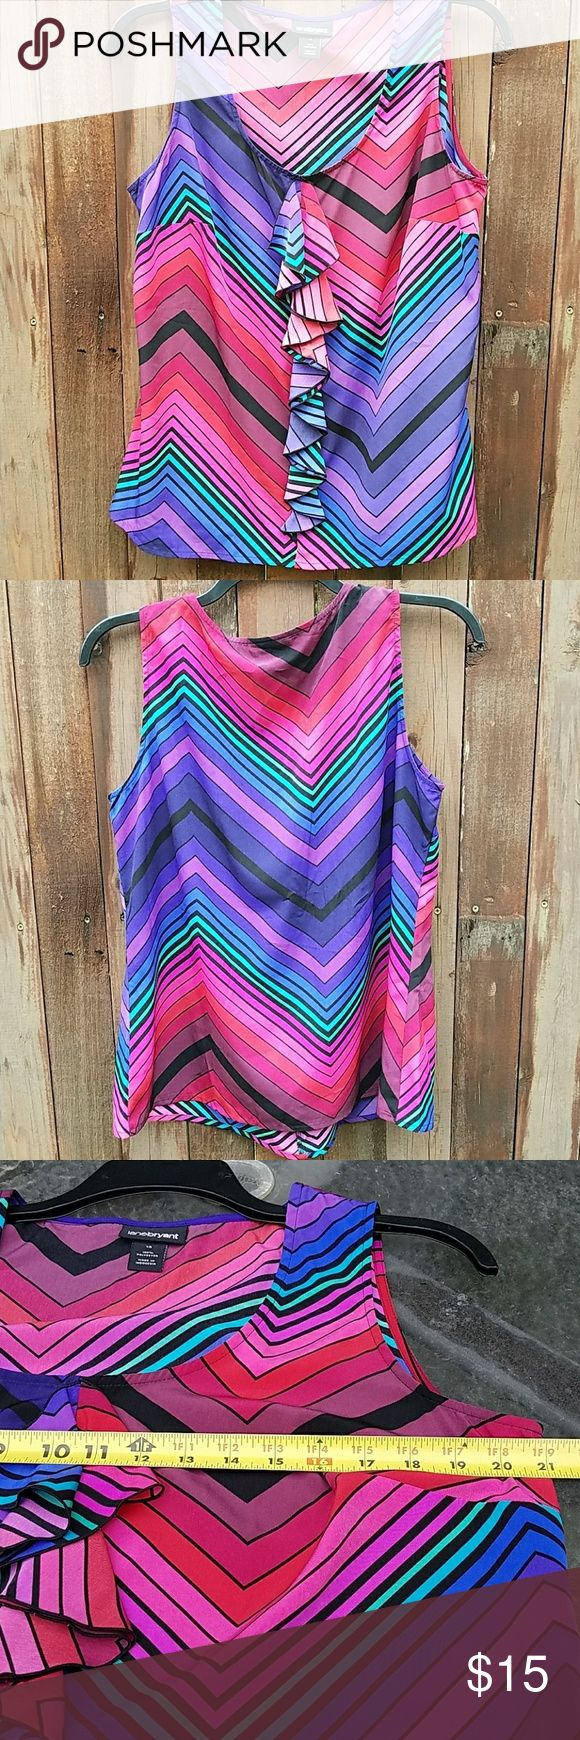 Lane Bryant top Multi color Lane Bryant sleevless top with ruffled design in the center of blouse. Measurements in pics Lane Bryant Tops Blouses